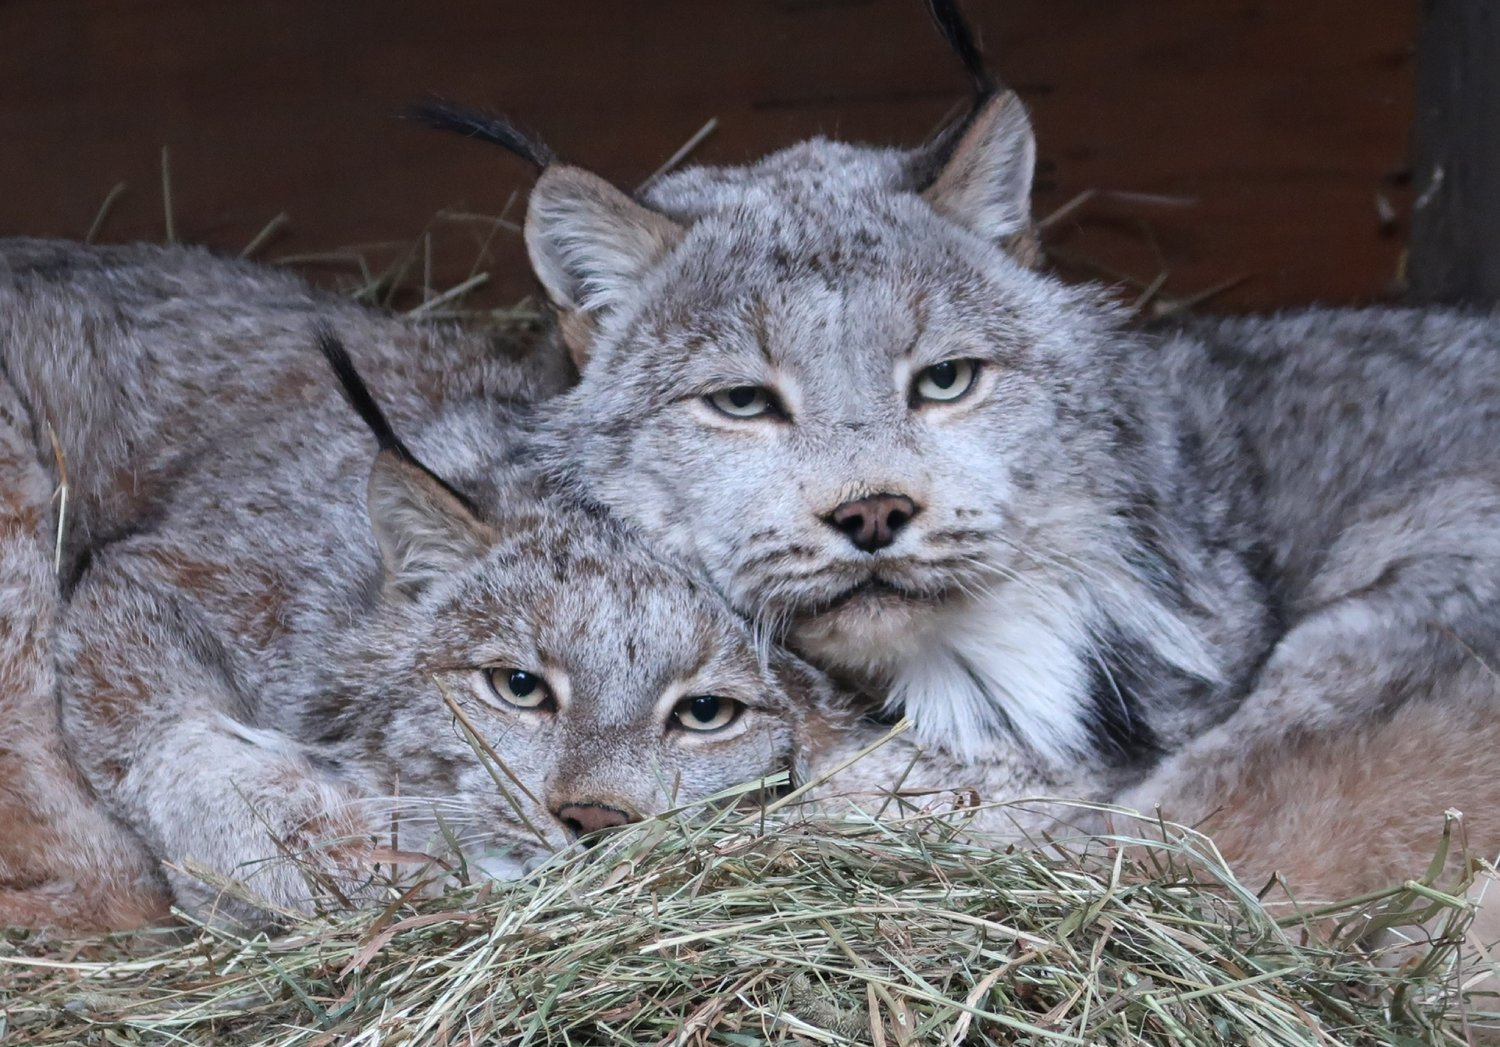 Calagary, pictured on the right, snuggling in an elevated den box with his mate, Sylvie.